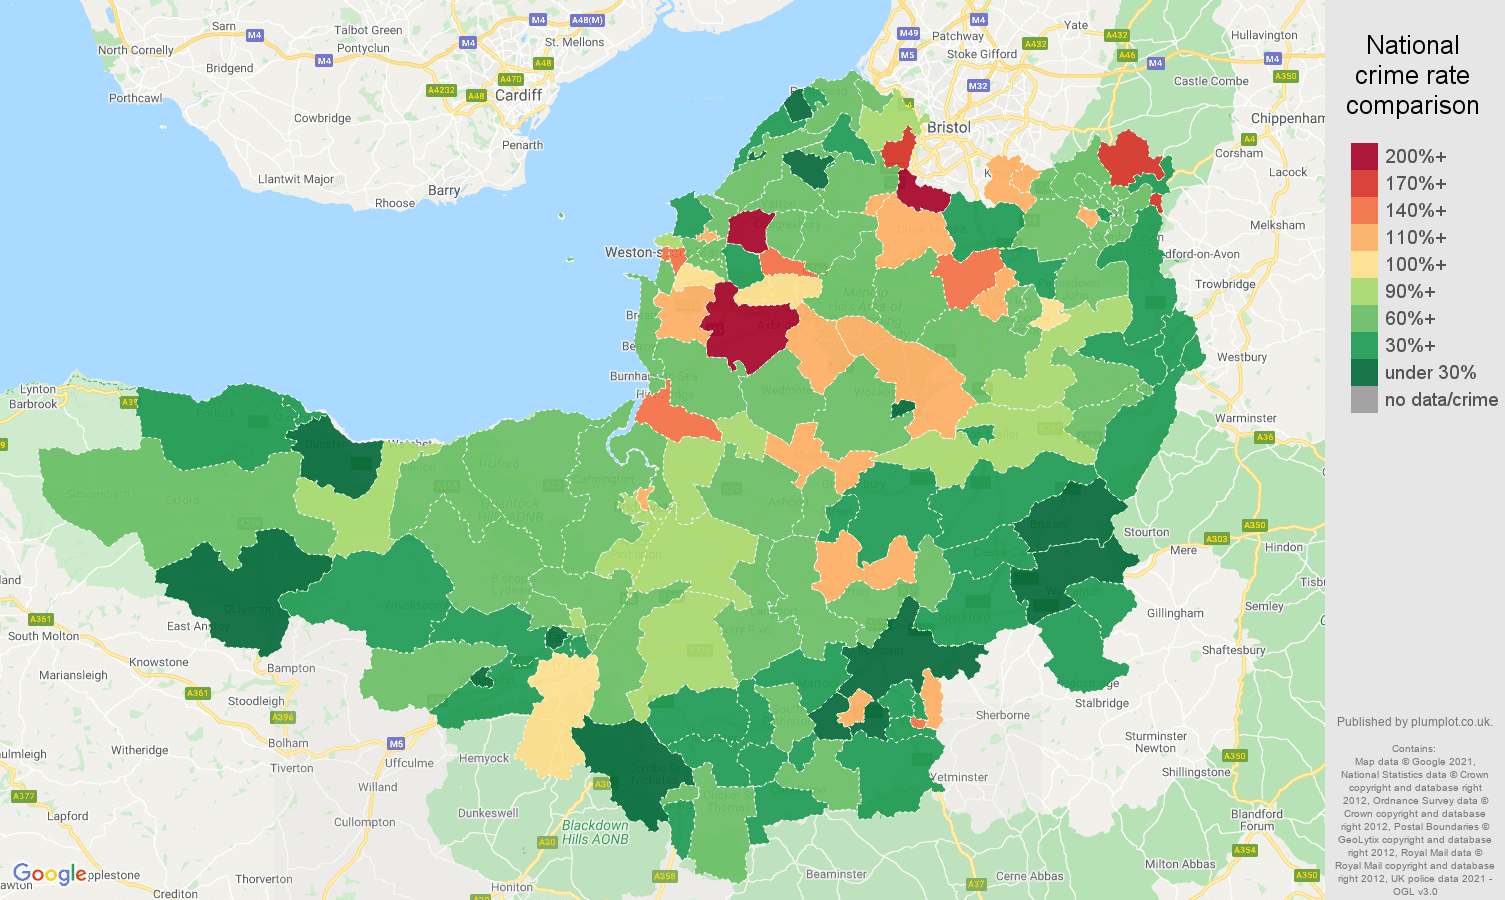 Somerset burglary crime rate comparison map